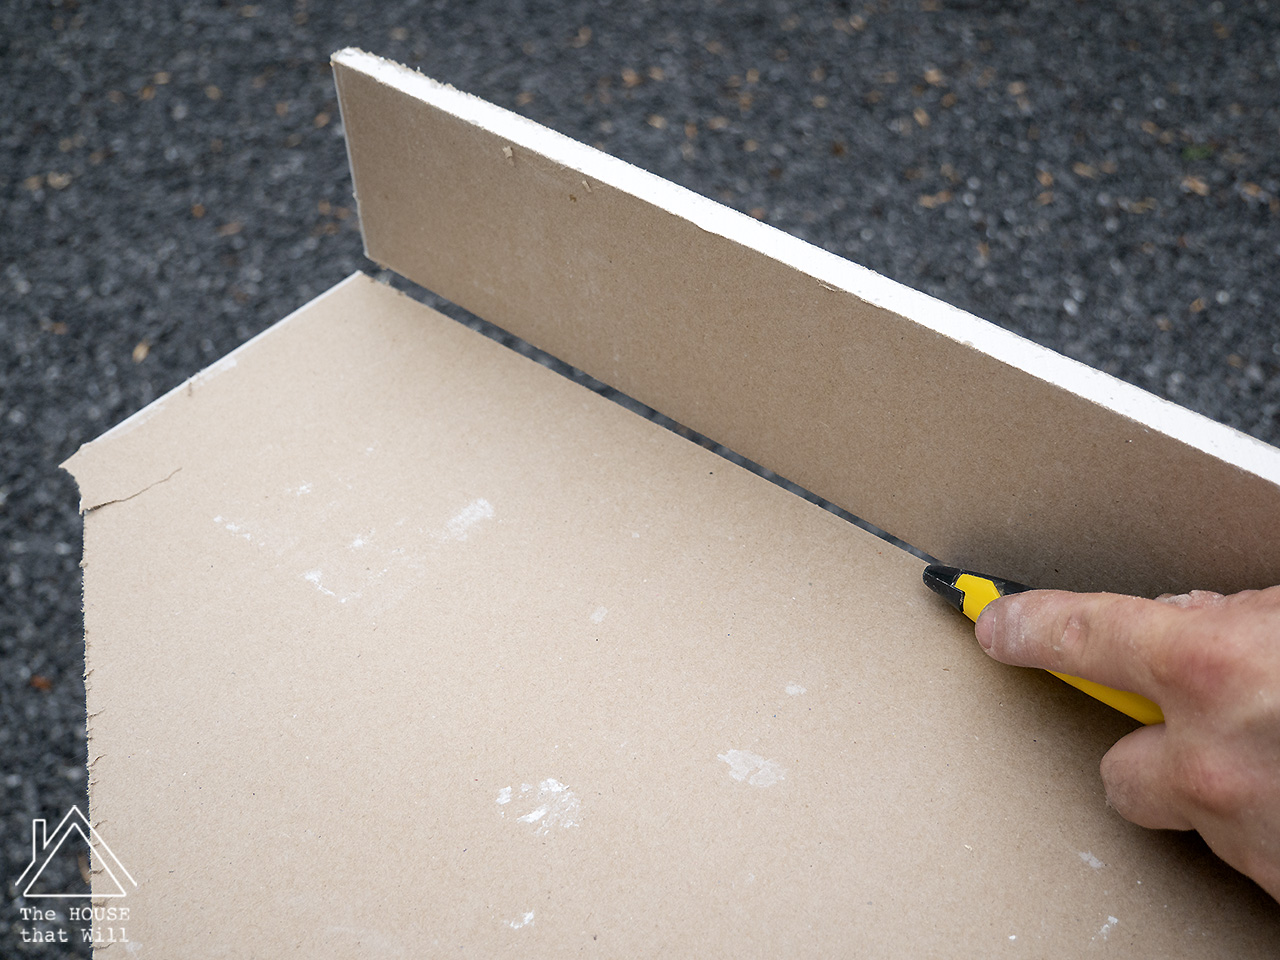 The House that Will | How to Build a DIY Stud Wall with Plasterboard